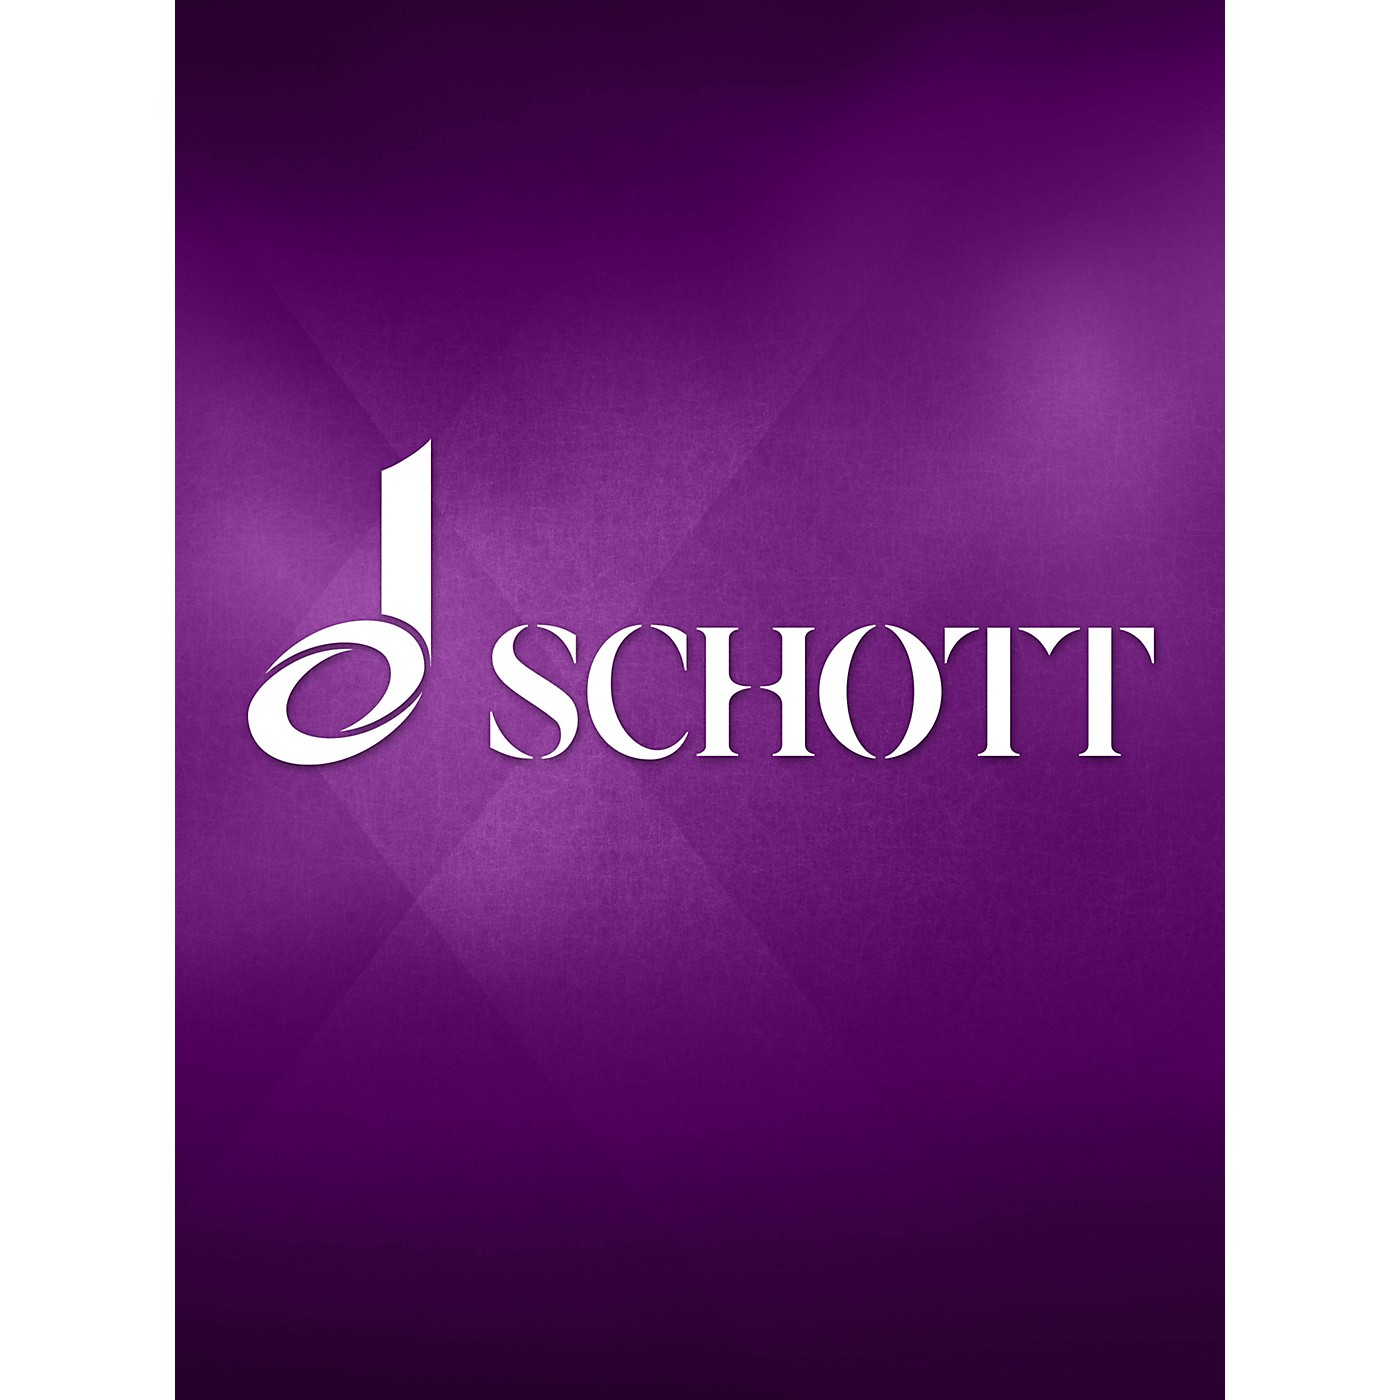 Schott Grosse Duo Buch Grosse Duo Buch Schott Series by Grosse thumbnail